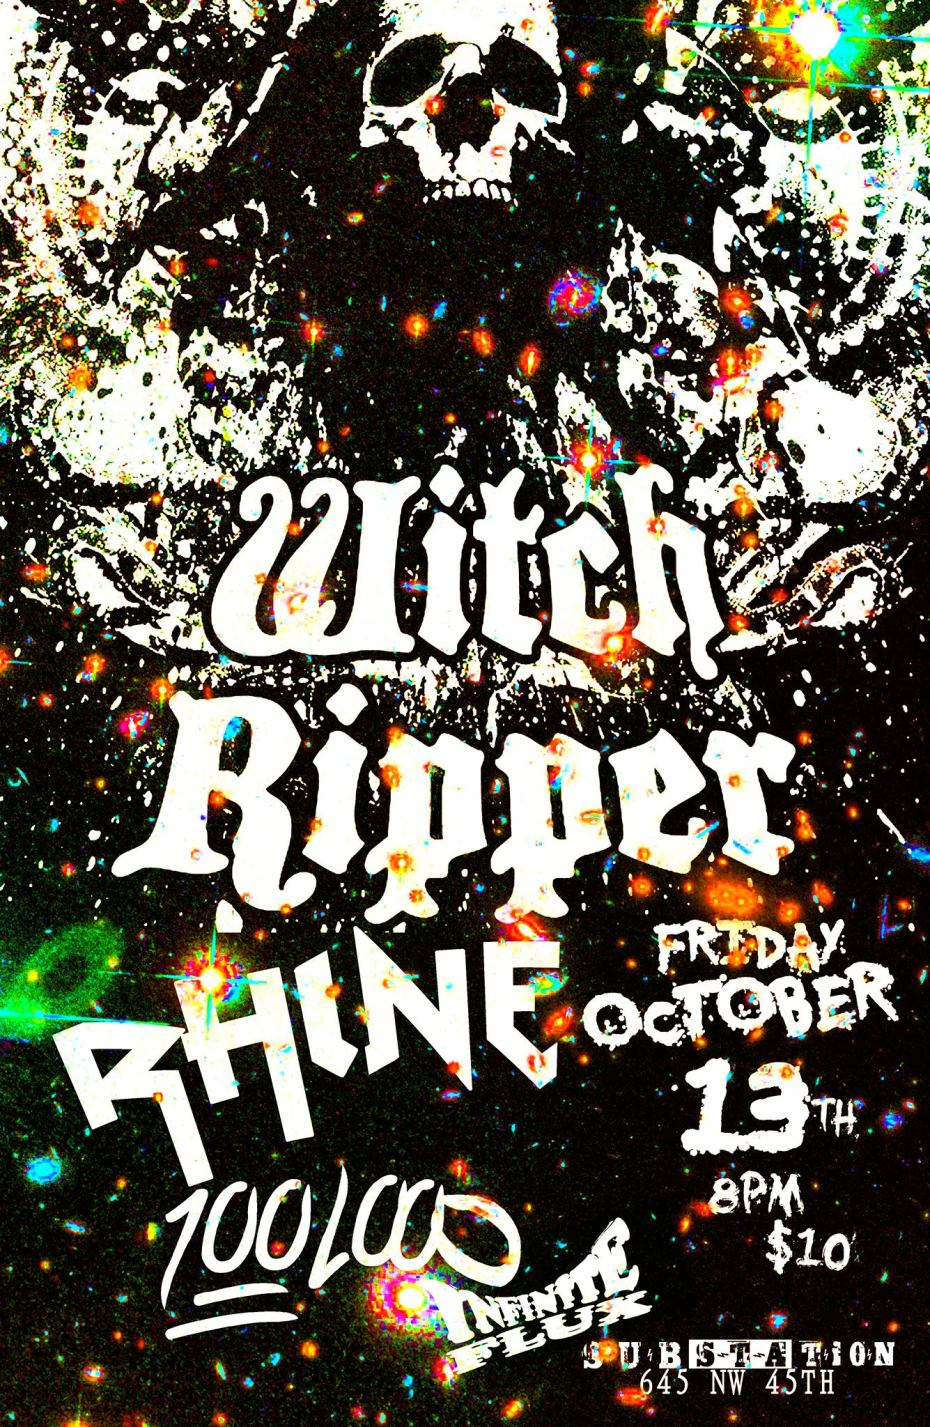 hundred loud witch ripper rhine